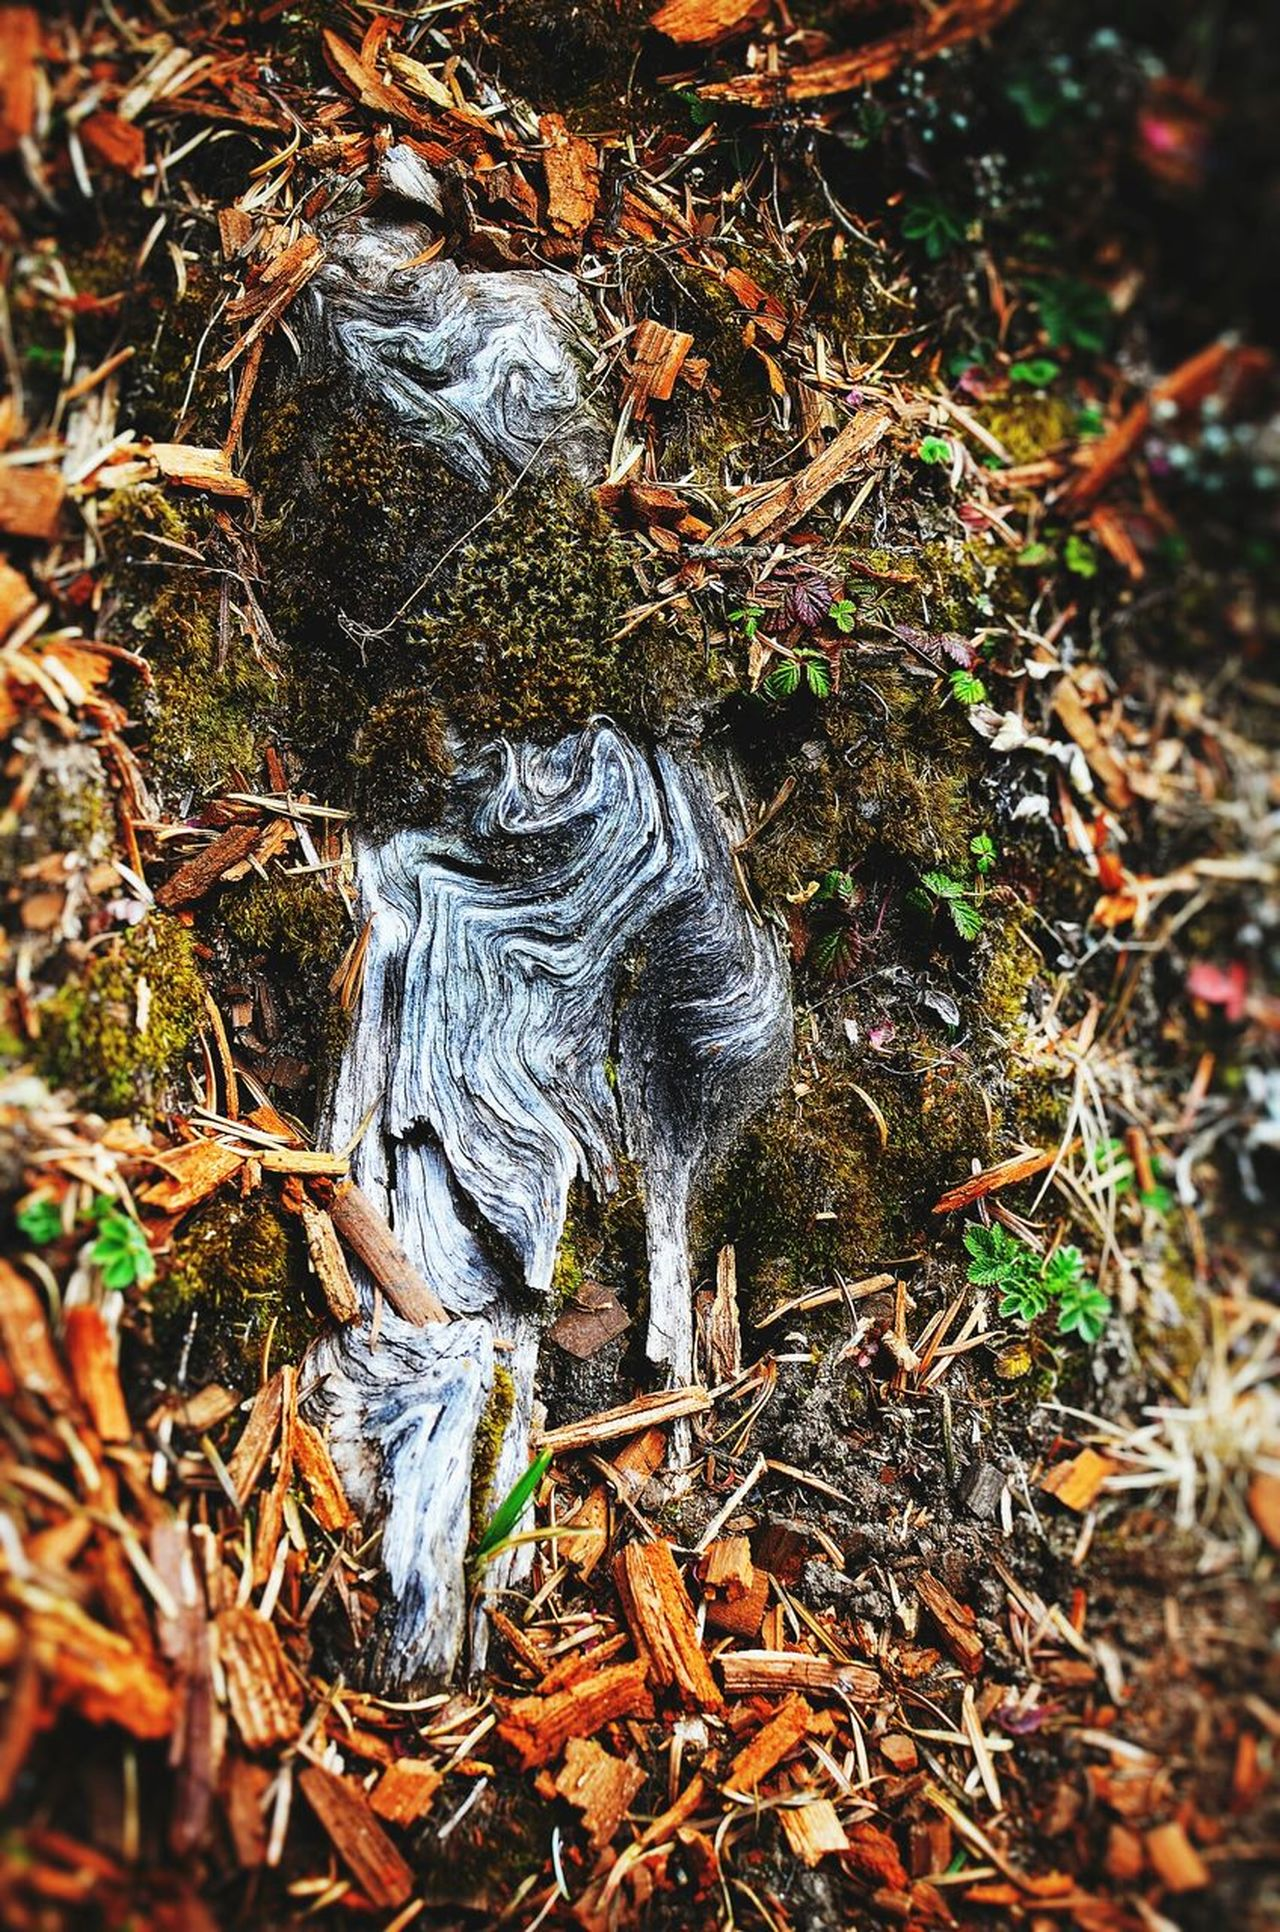 No People Nature Beauty In Nature Natureartwork Natureartist Nature Reserve Natureart Art In Nature Beauty In Nature Textured  Tree Trunk Wood - Material Wooden Texture Lady Of The Woods Lady In Forest